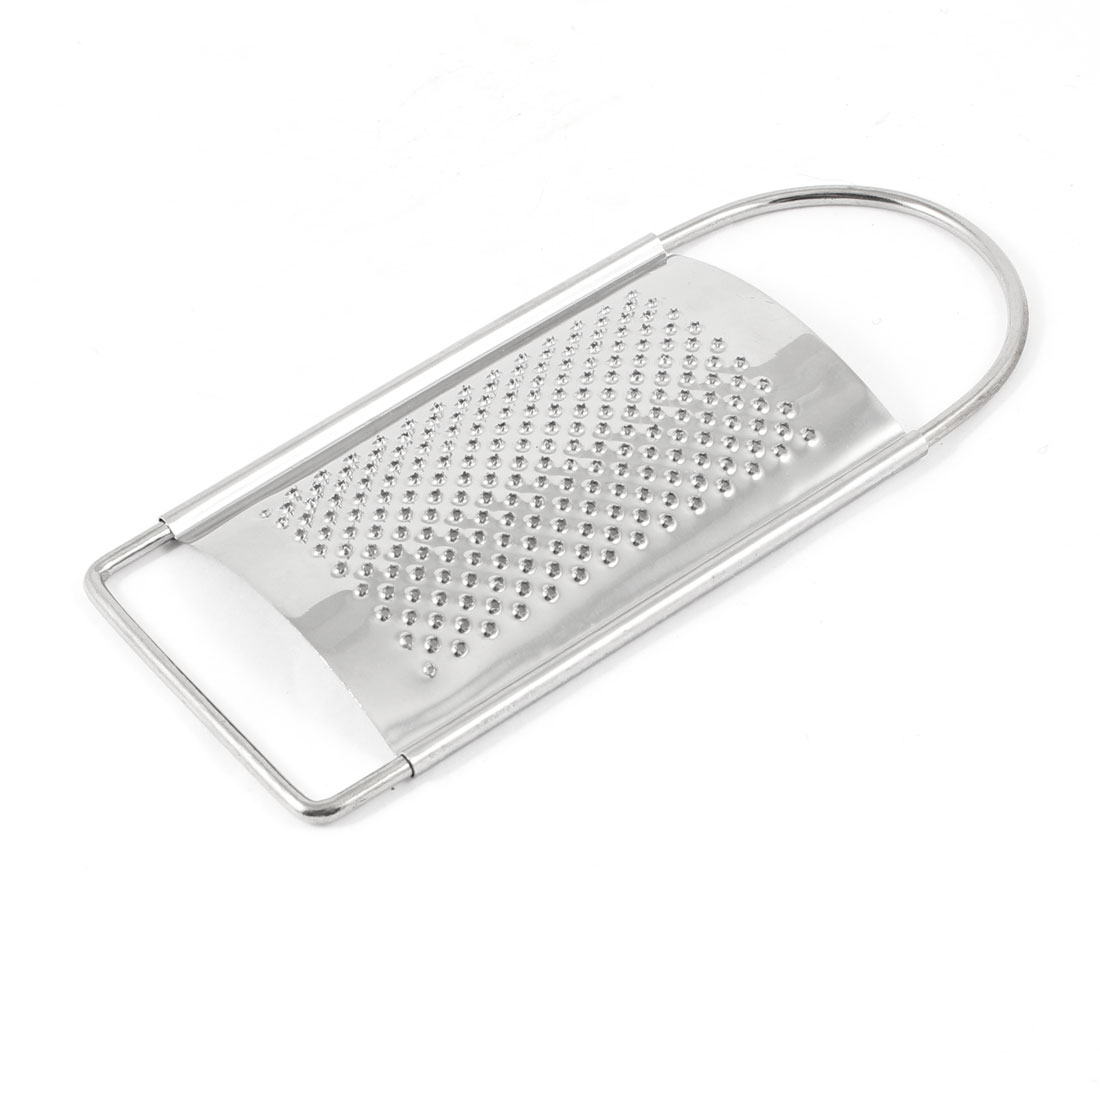 Stainless Steel Shredded Zester Flat Grater Cutter Kitchen Tool